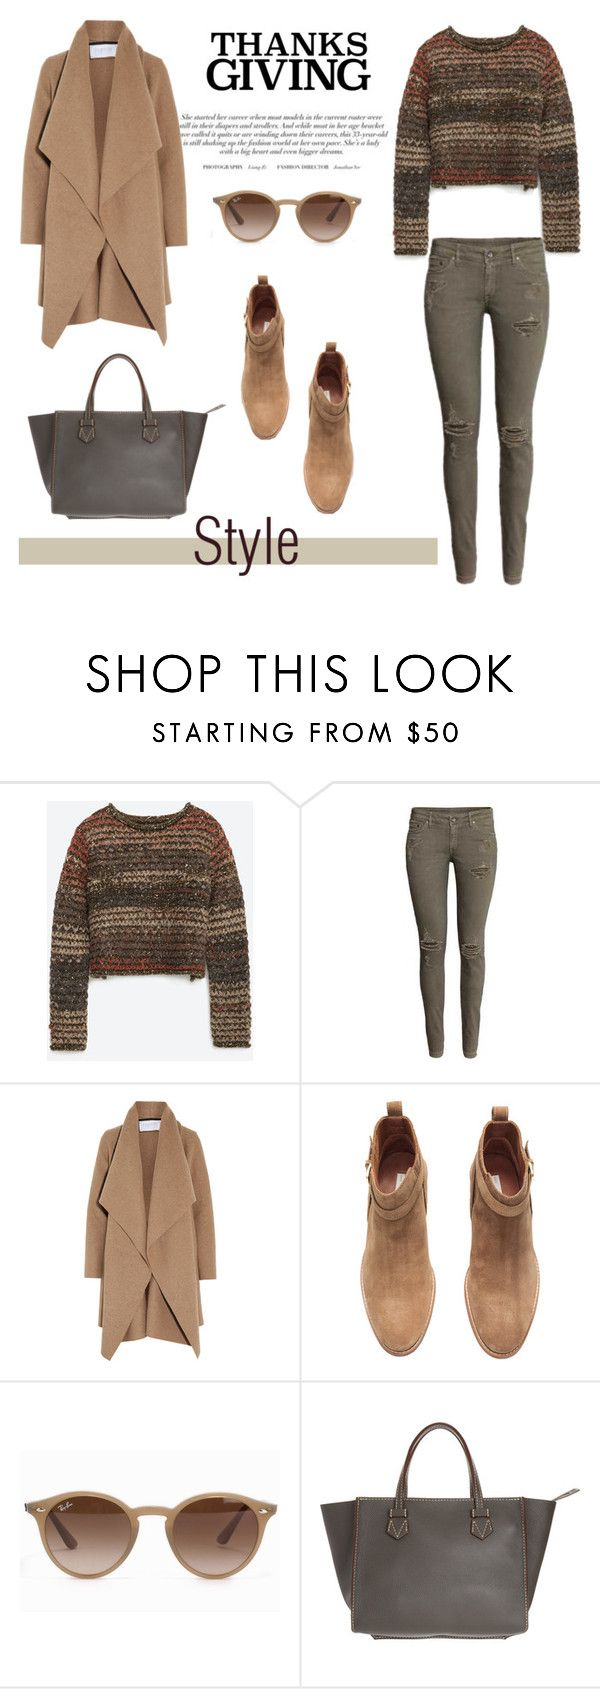 """""""Thanksgiving Dinner"""" by vbasianioti ❤ liked on Polyvore featuring Zara, Harris Wharf London, H&M, Ray-Ban, Moreau and thanksgiving"""